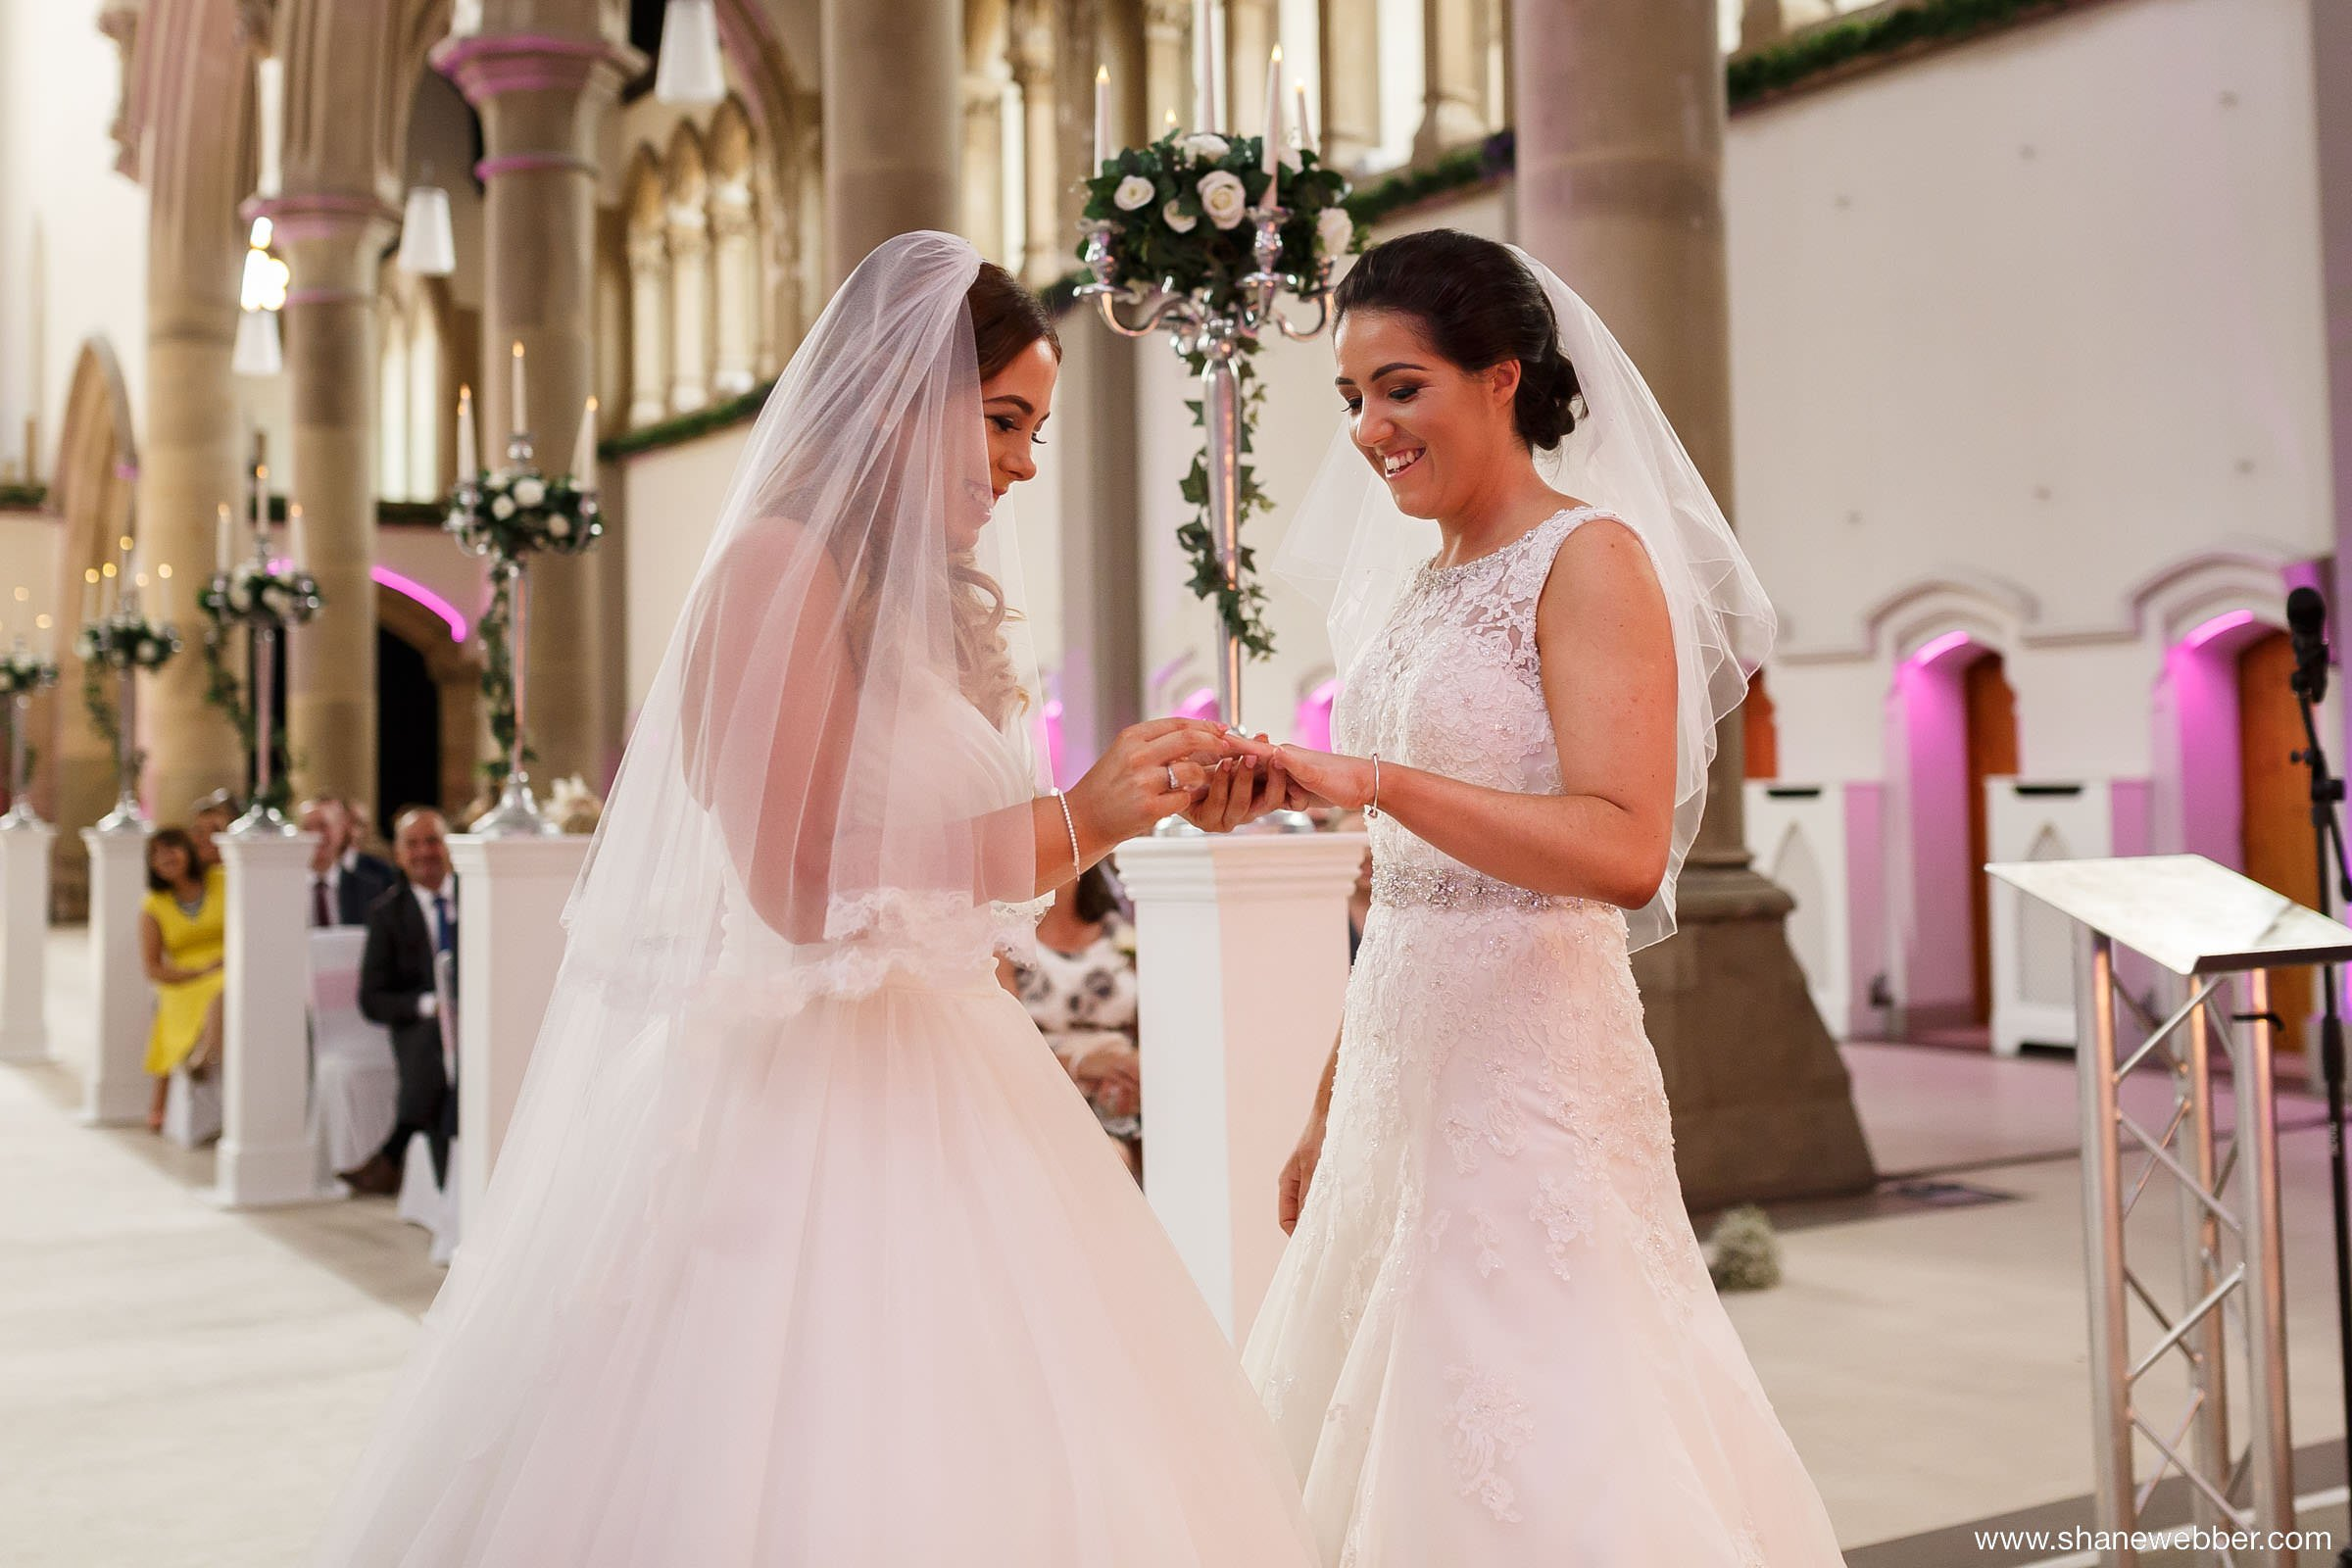 Natural photos of same sex wedding at Gorton Monastery Manchester